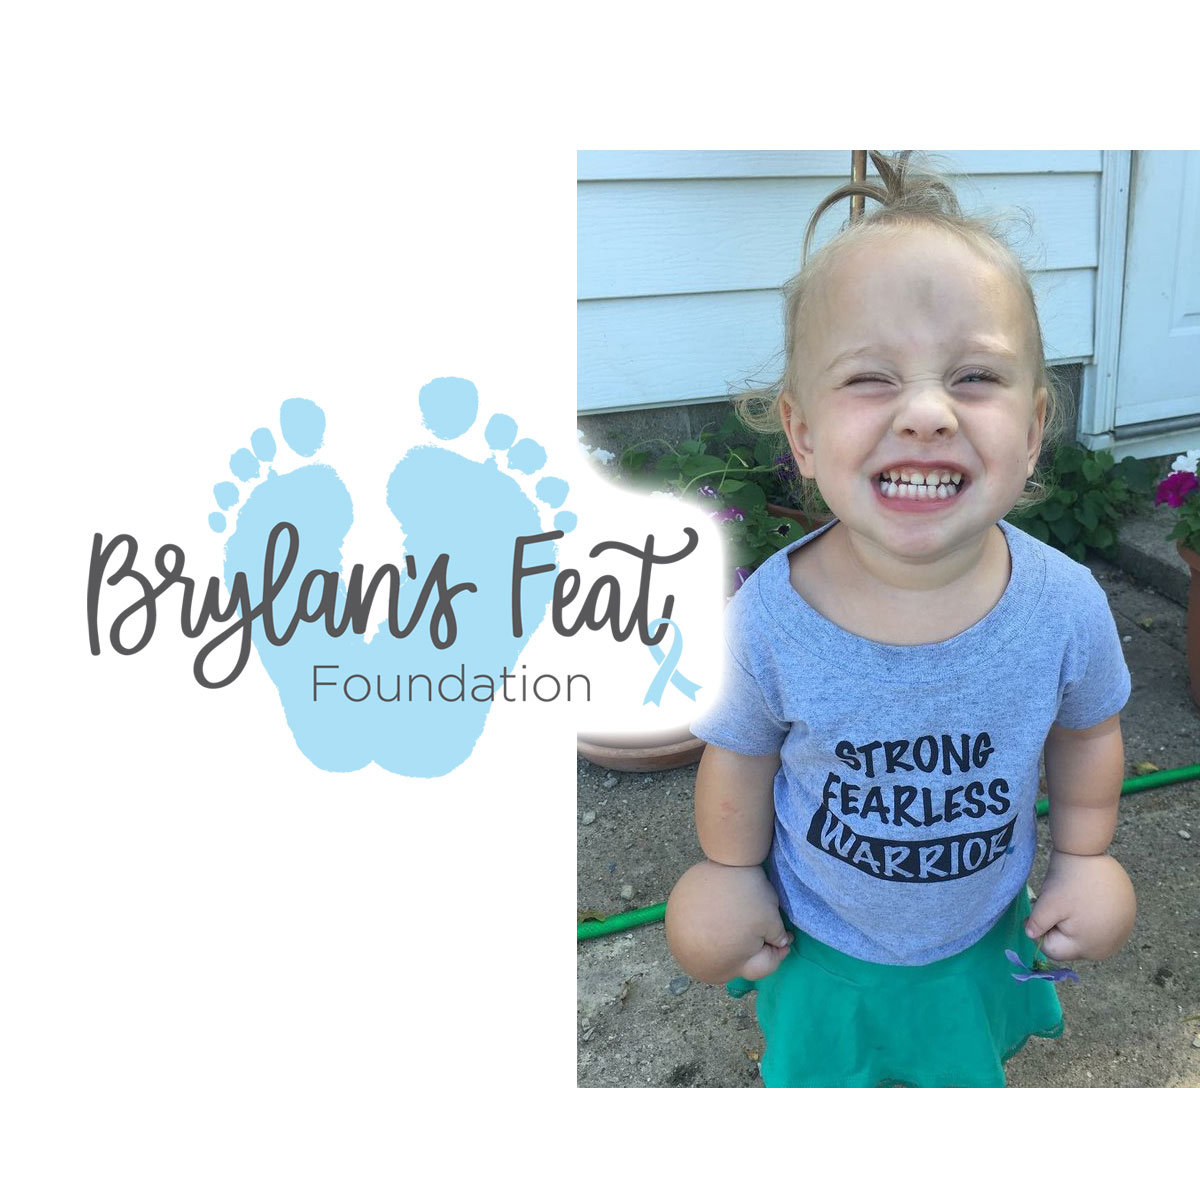 Brylan's Feat Foundation goes VIRTUAL:  Join us in Supporting Children Fighting Lymphedema in a Live-Streaming Event September 24th! Click to access the Live Stream